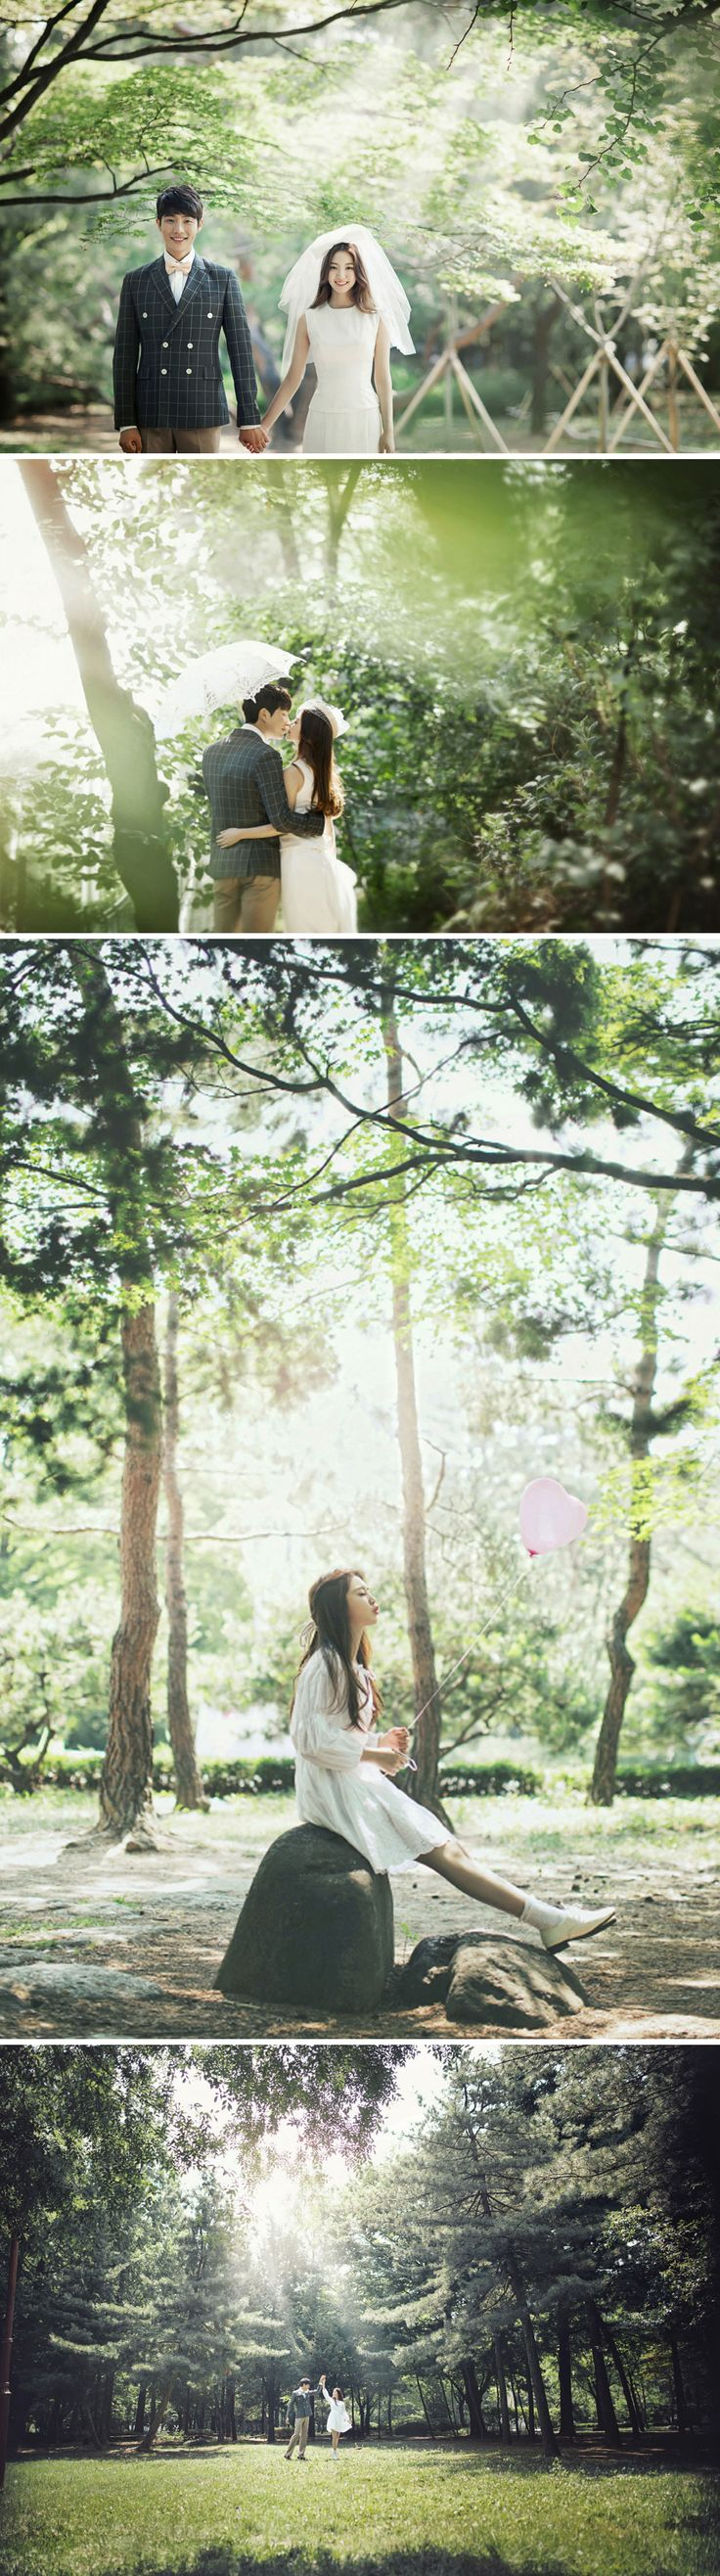 Korea outdoor pre-wedding photoshoot! Love the lush greenery!